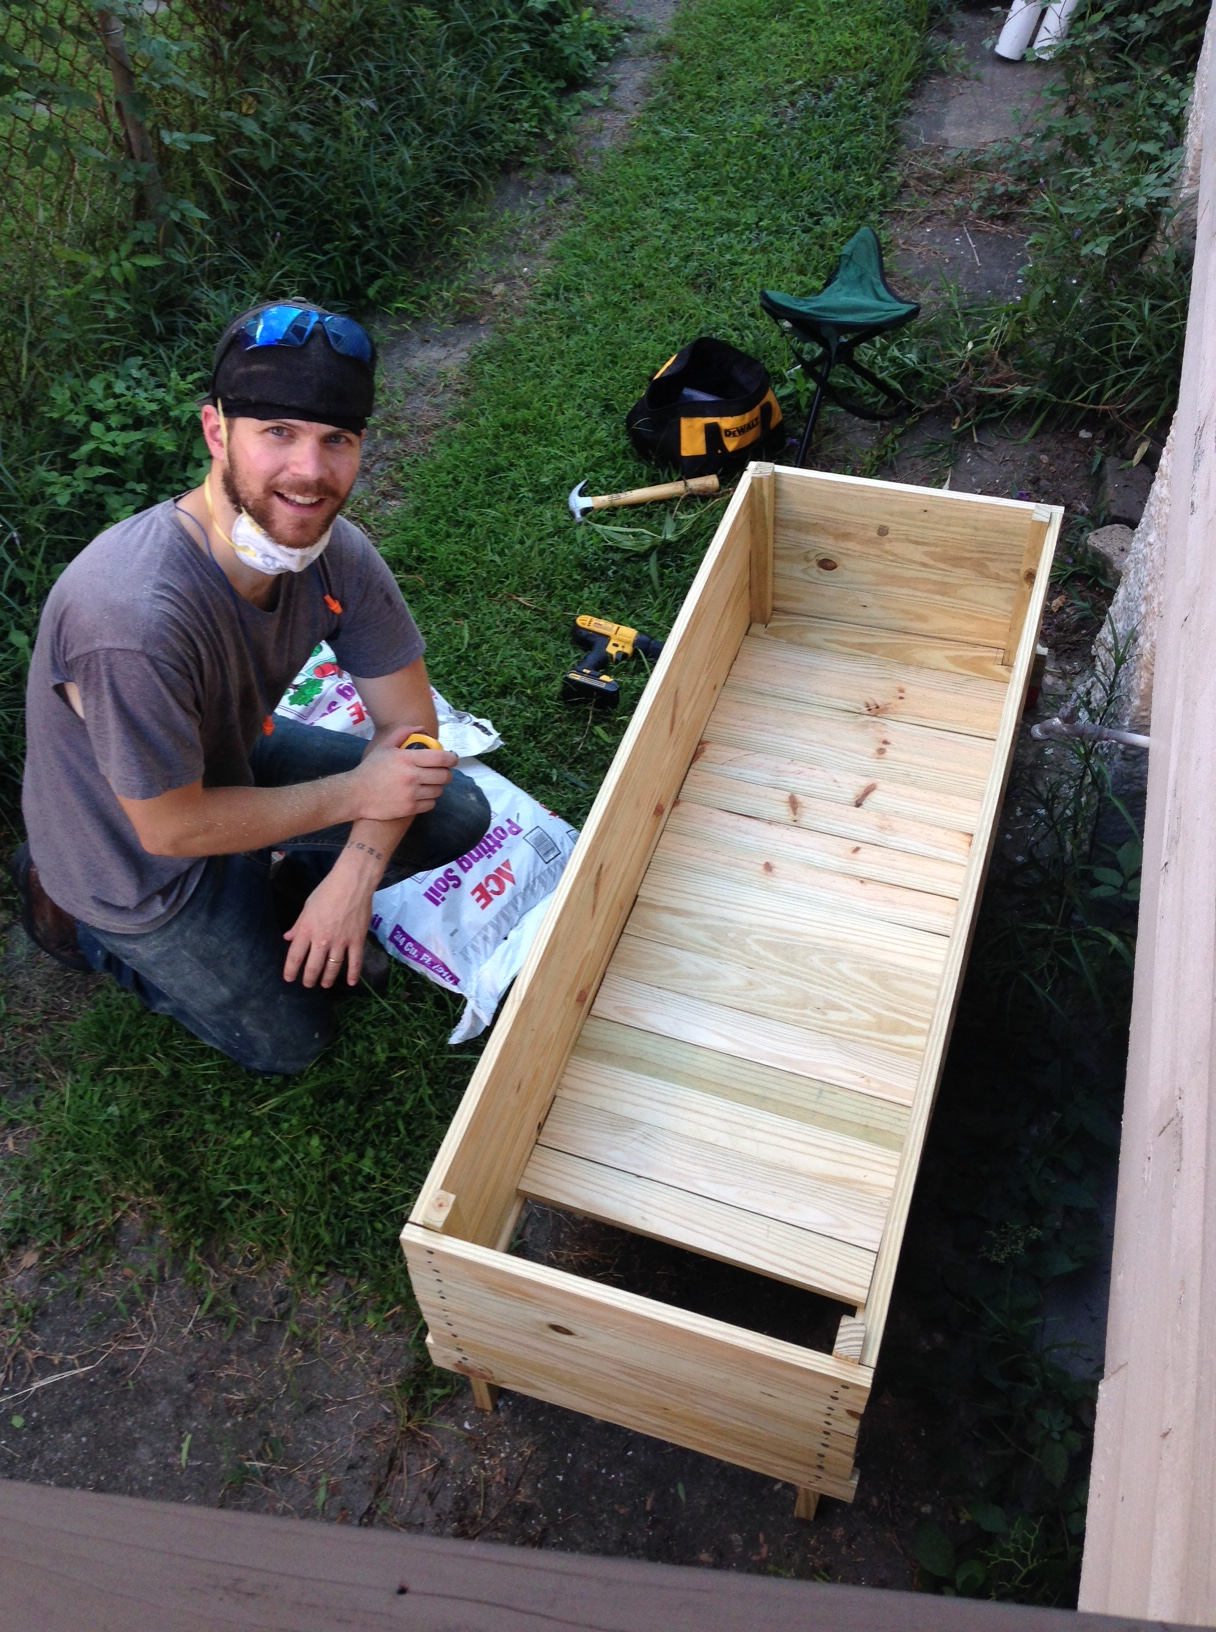 KP doing a raised bed